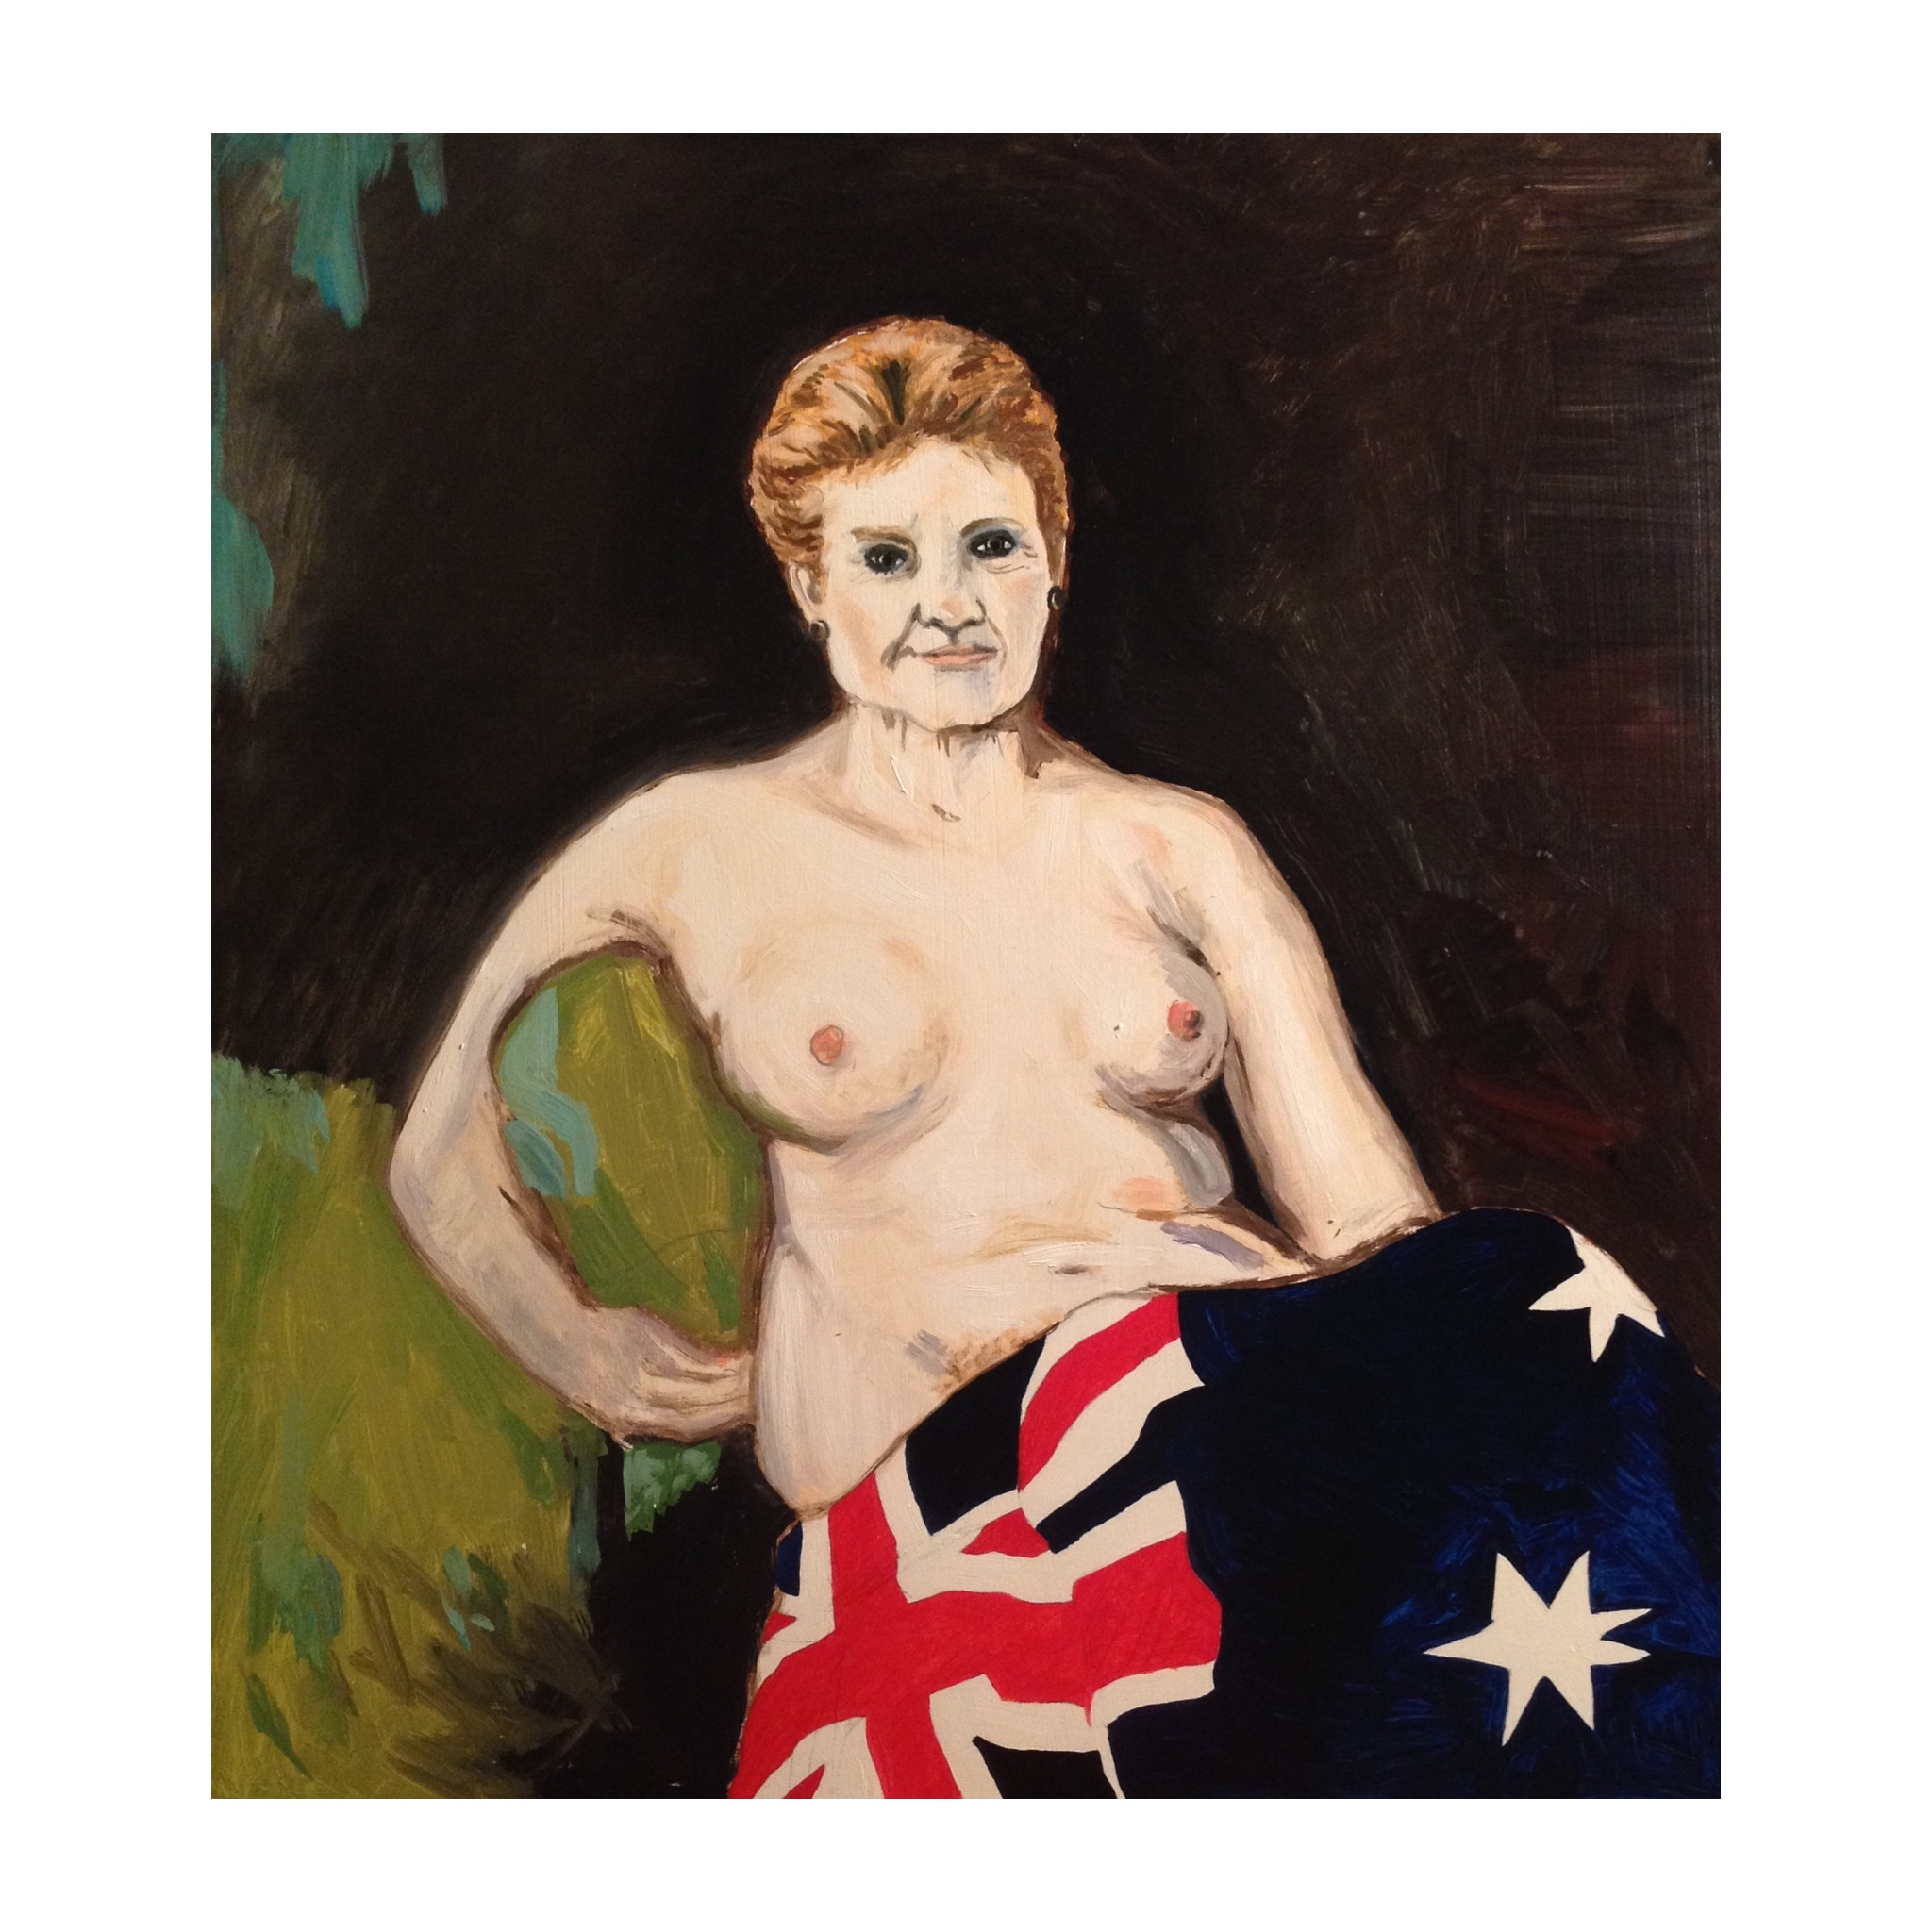 """Her Time Has Come"" 120x80cm oil on linen - Andrew Bolt's Archibald Prize-winning portrait of Pauline Hanson"